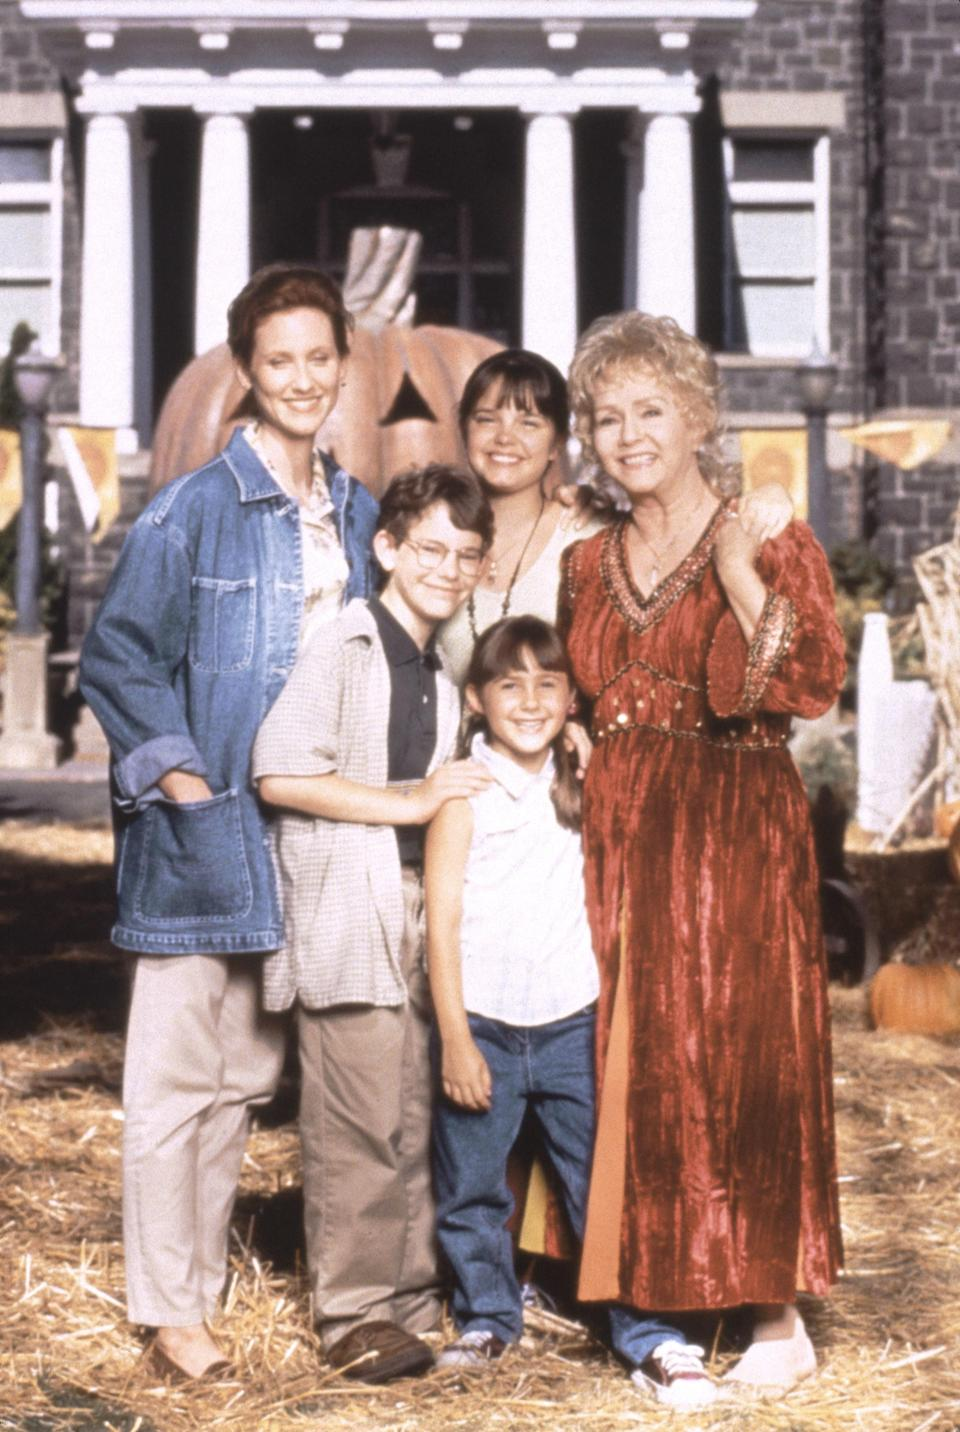 """<p>A modern classic, <em>Halloweentown</em> follows Marnie Piper on her journey of discovering she's a witch and having to decide whether she'll embrace her magical legacy or choose to live as a mortal. Aside from seeing what a utopia of witches, vampires, and monsters might look like, another major selling point of the film is getting to watch Debbie Reynolds as Aggie, Marni's grandmother, whisk about town in a slew of bedazzled gowns.</p> <p><a href=""""https://disneyplus.bn5x.net/VryLJ"""" rel=""""nofollow noopener"""" target=""""_blank"""" data-ylk=""""slk:Available on Disney+"""" class=""""link rapid-noclick-resp""""><em>Available on Disney+</em></a></p>"""